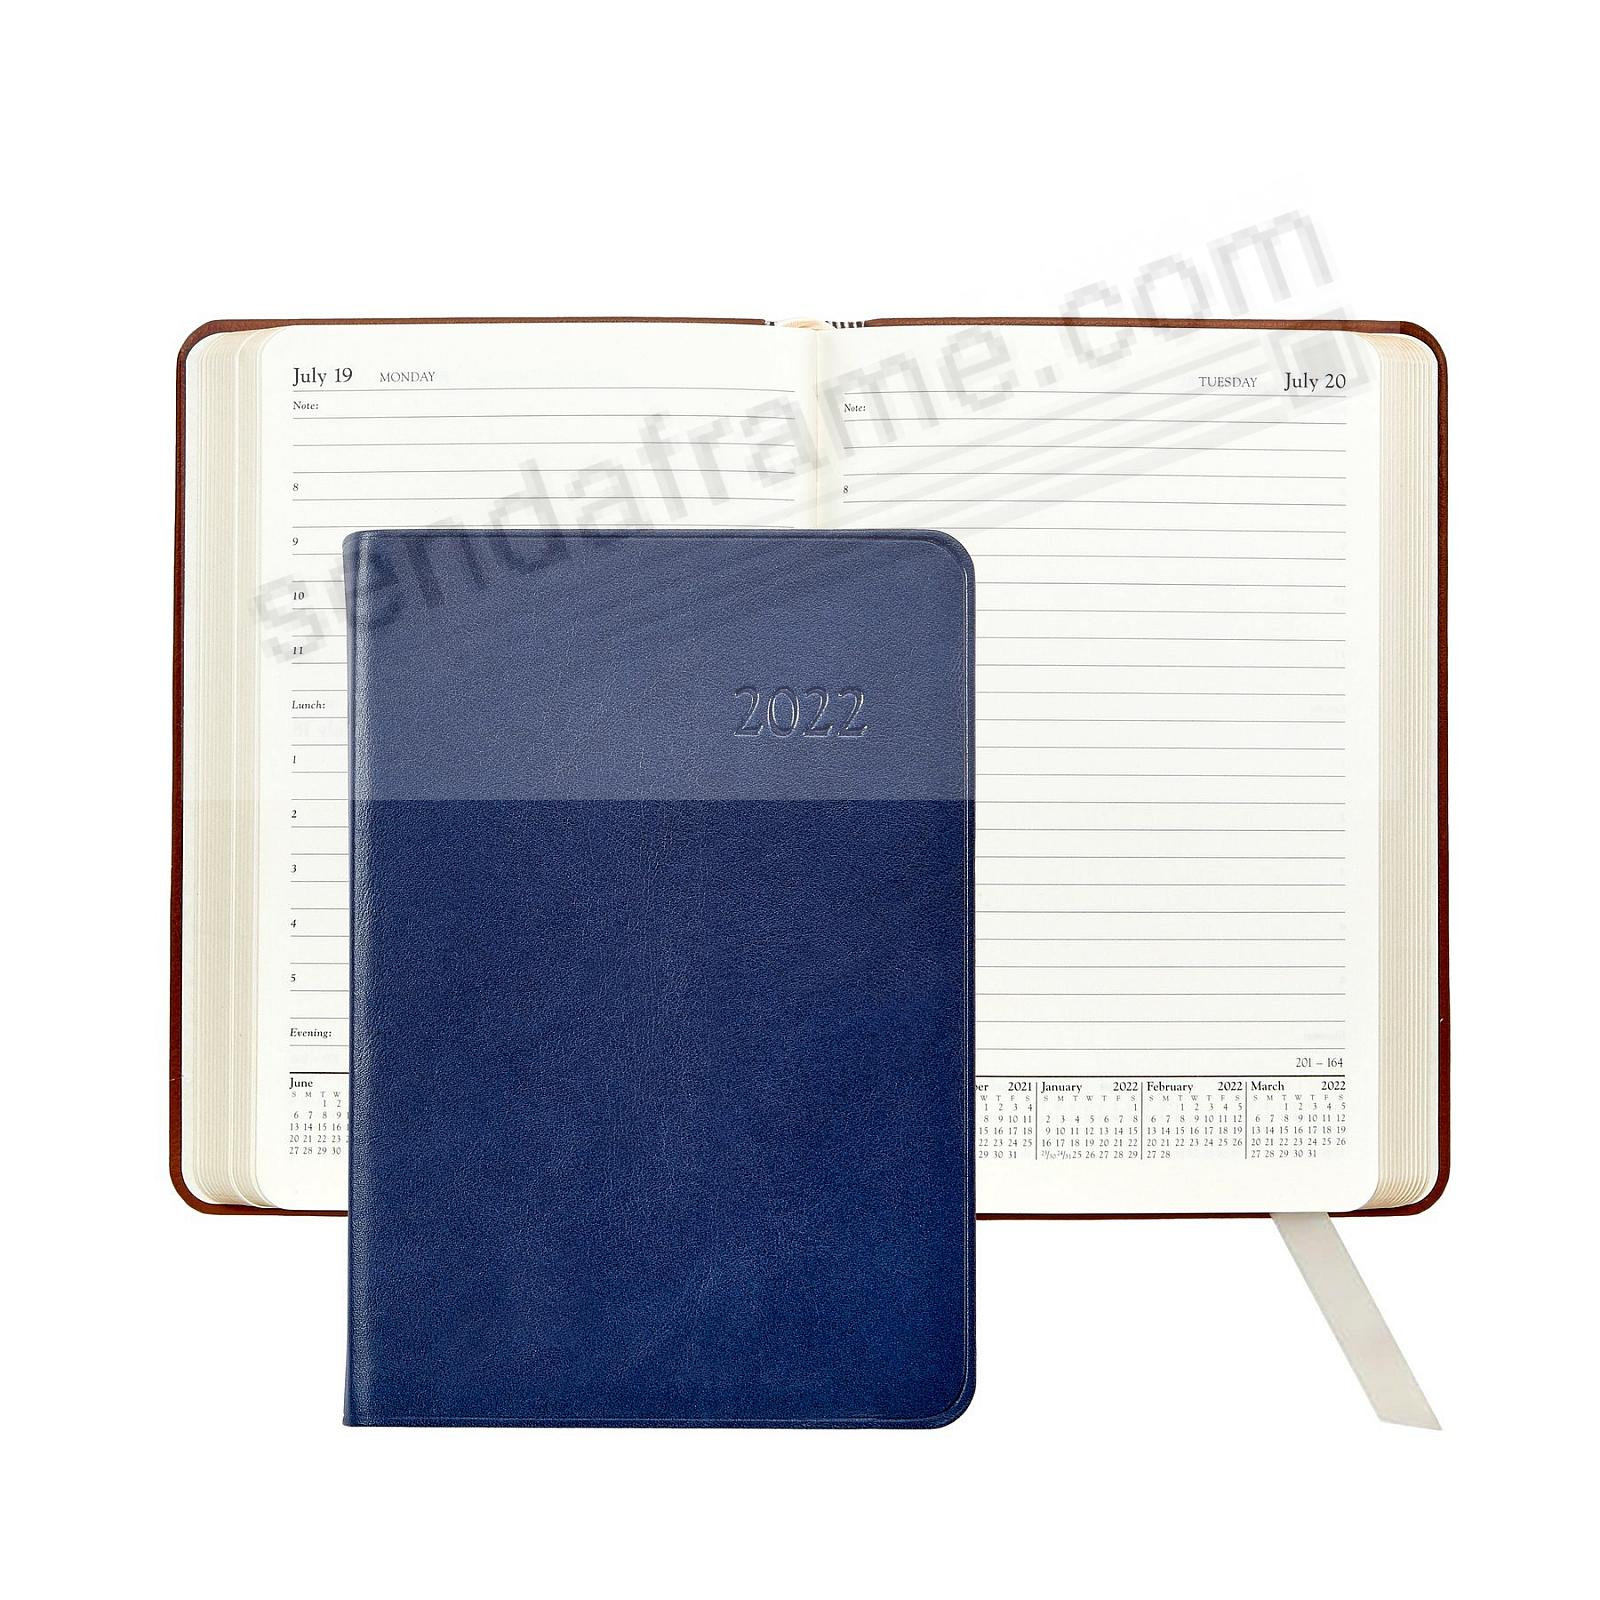 2018 TRADITIONAL NAVY-BLUE 8-in Fine Leather Daily Journal by Graphic Image™